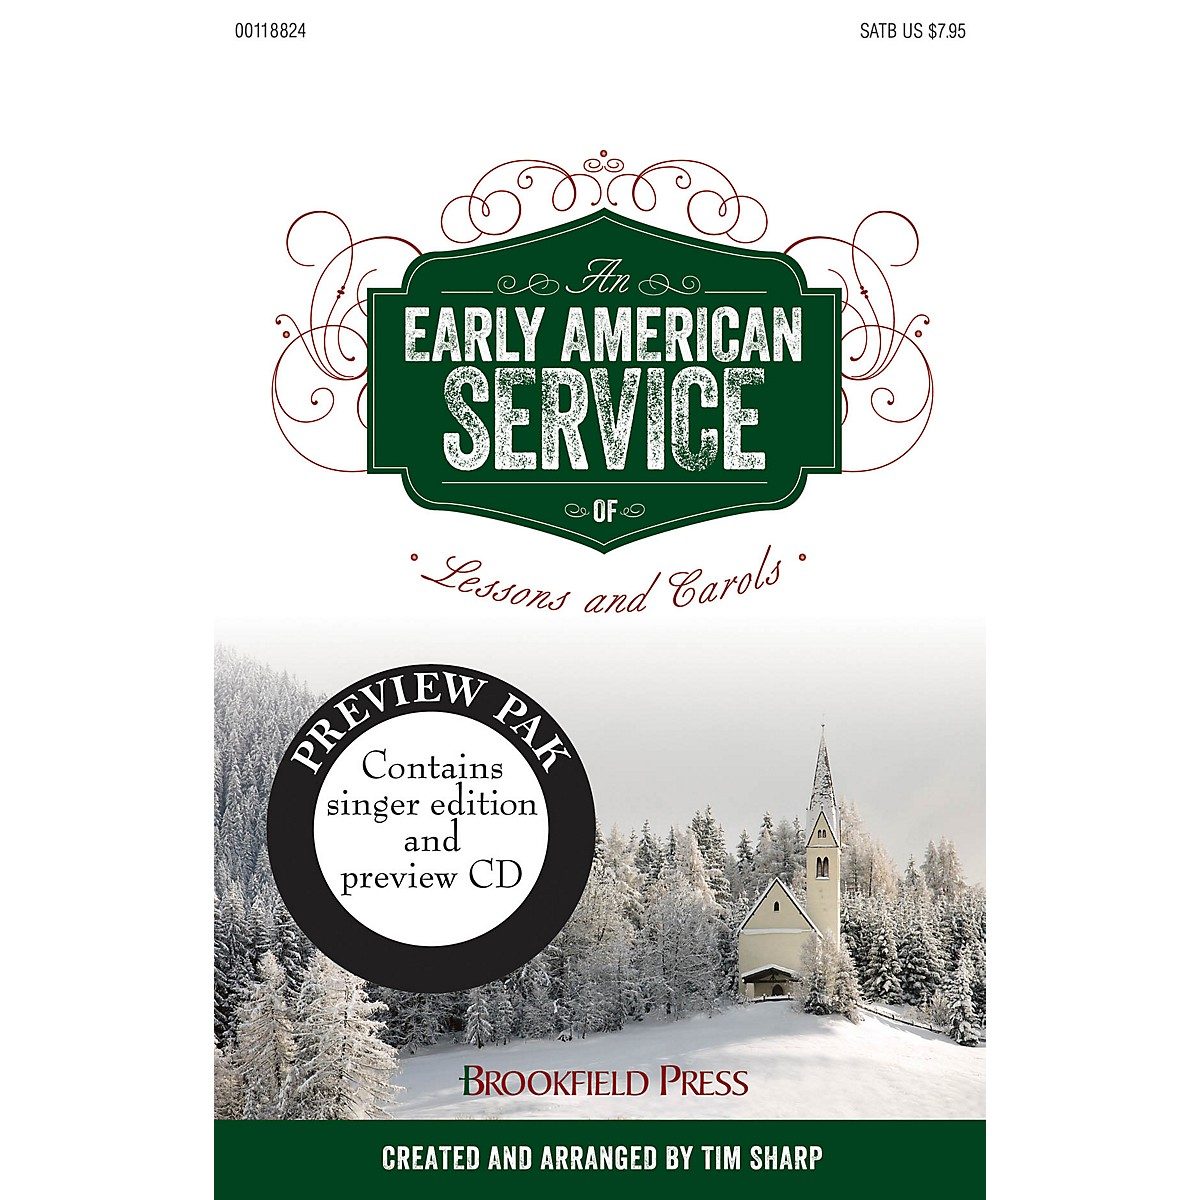 Brookfield An Early American Service of Lessons and Carols PREV CD PAK arranged by Tim Sharp